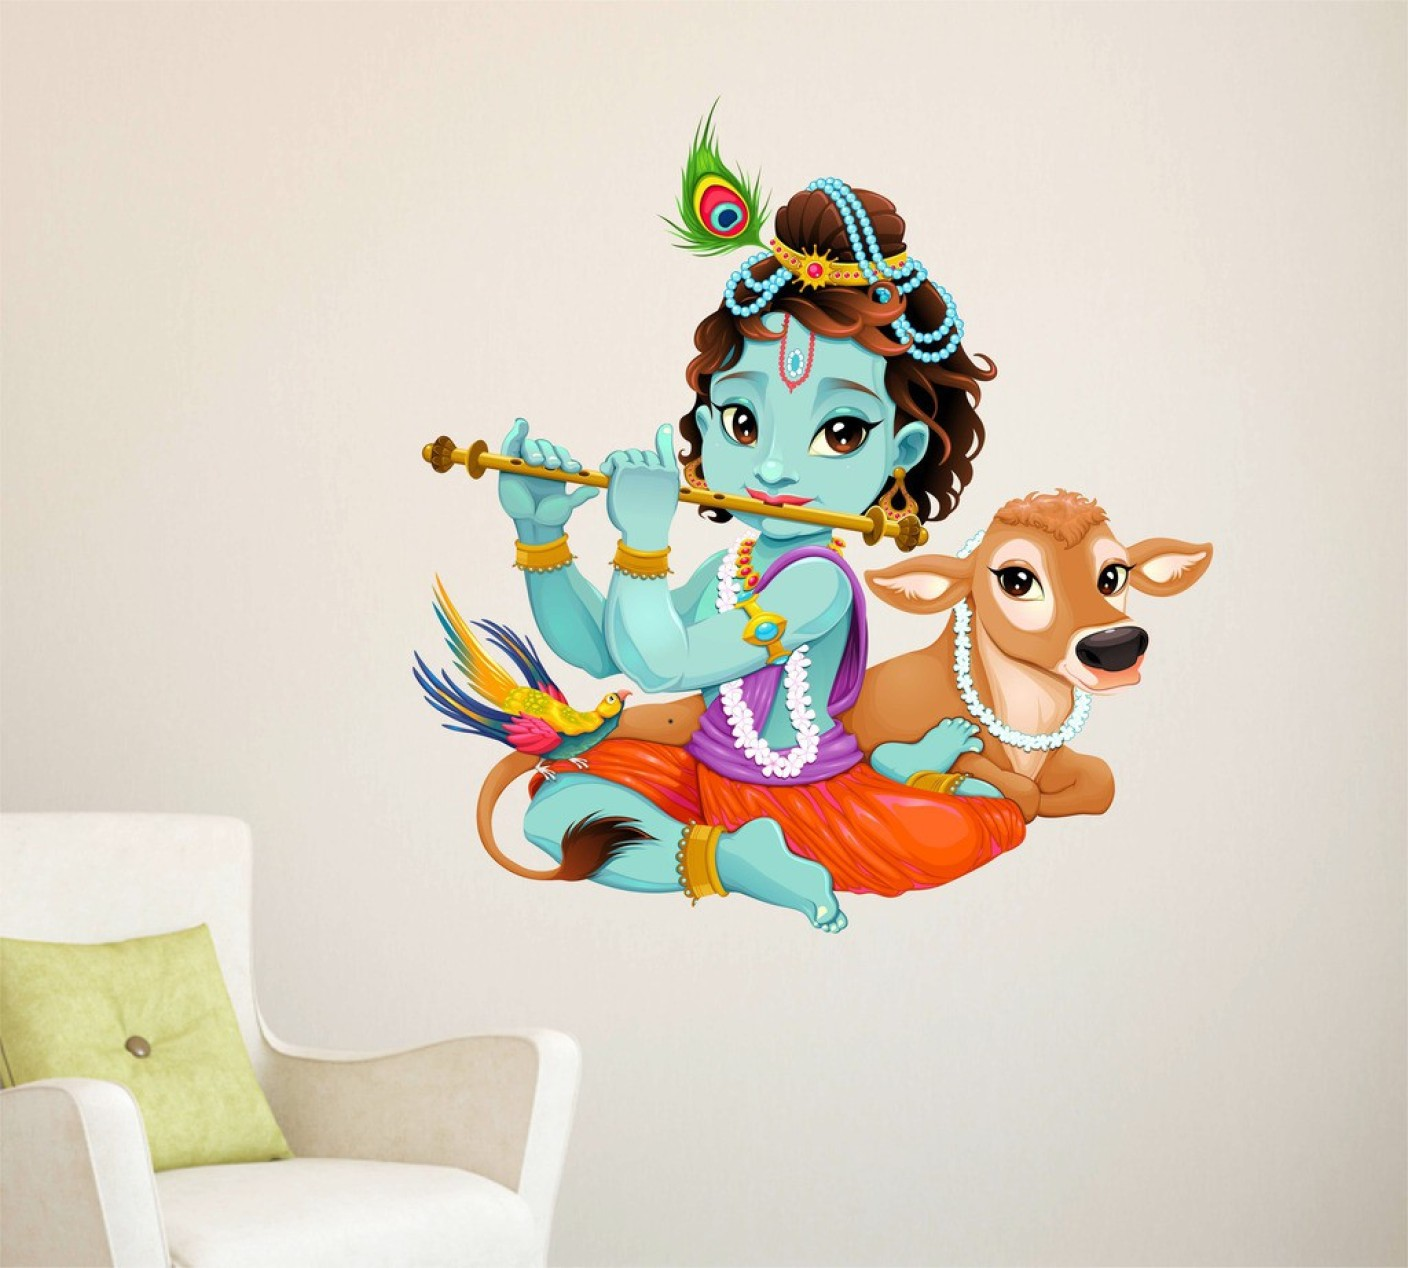 Wall stickers radha krishna - On Offer